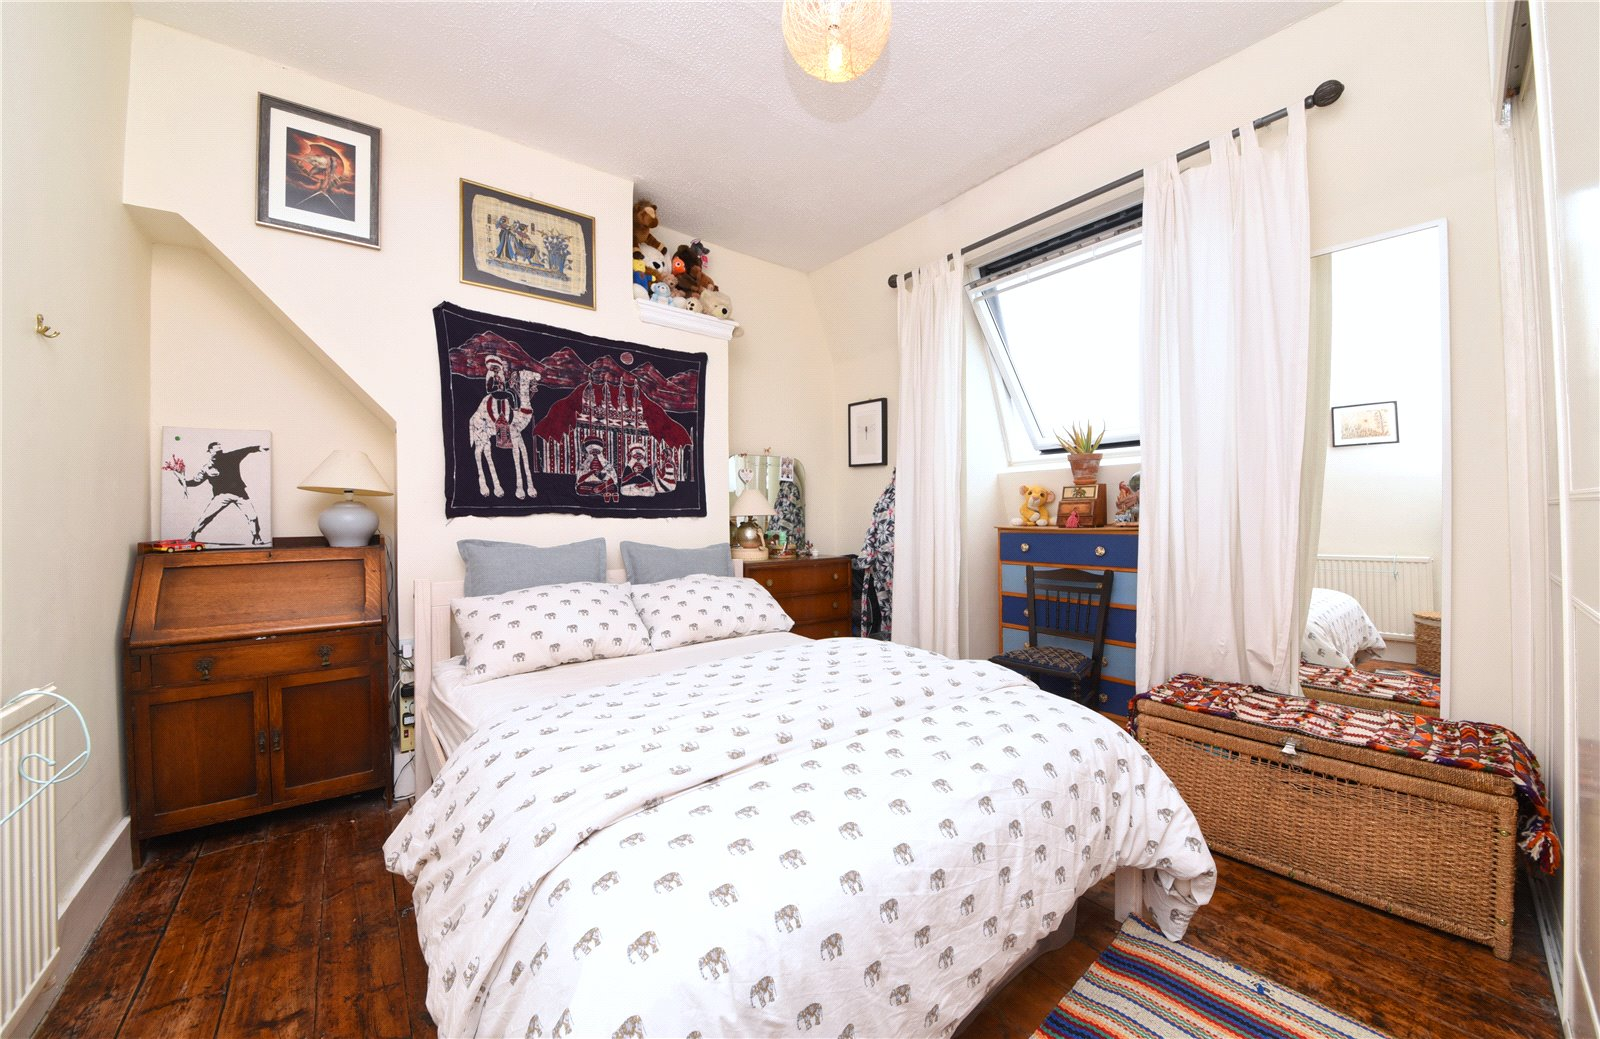 1 bed apartment for sale in New Barnet, EN5 5HW  - Property Image 1